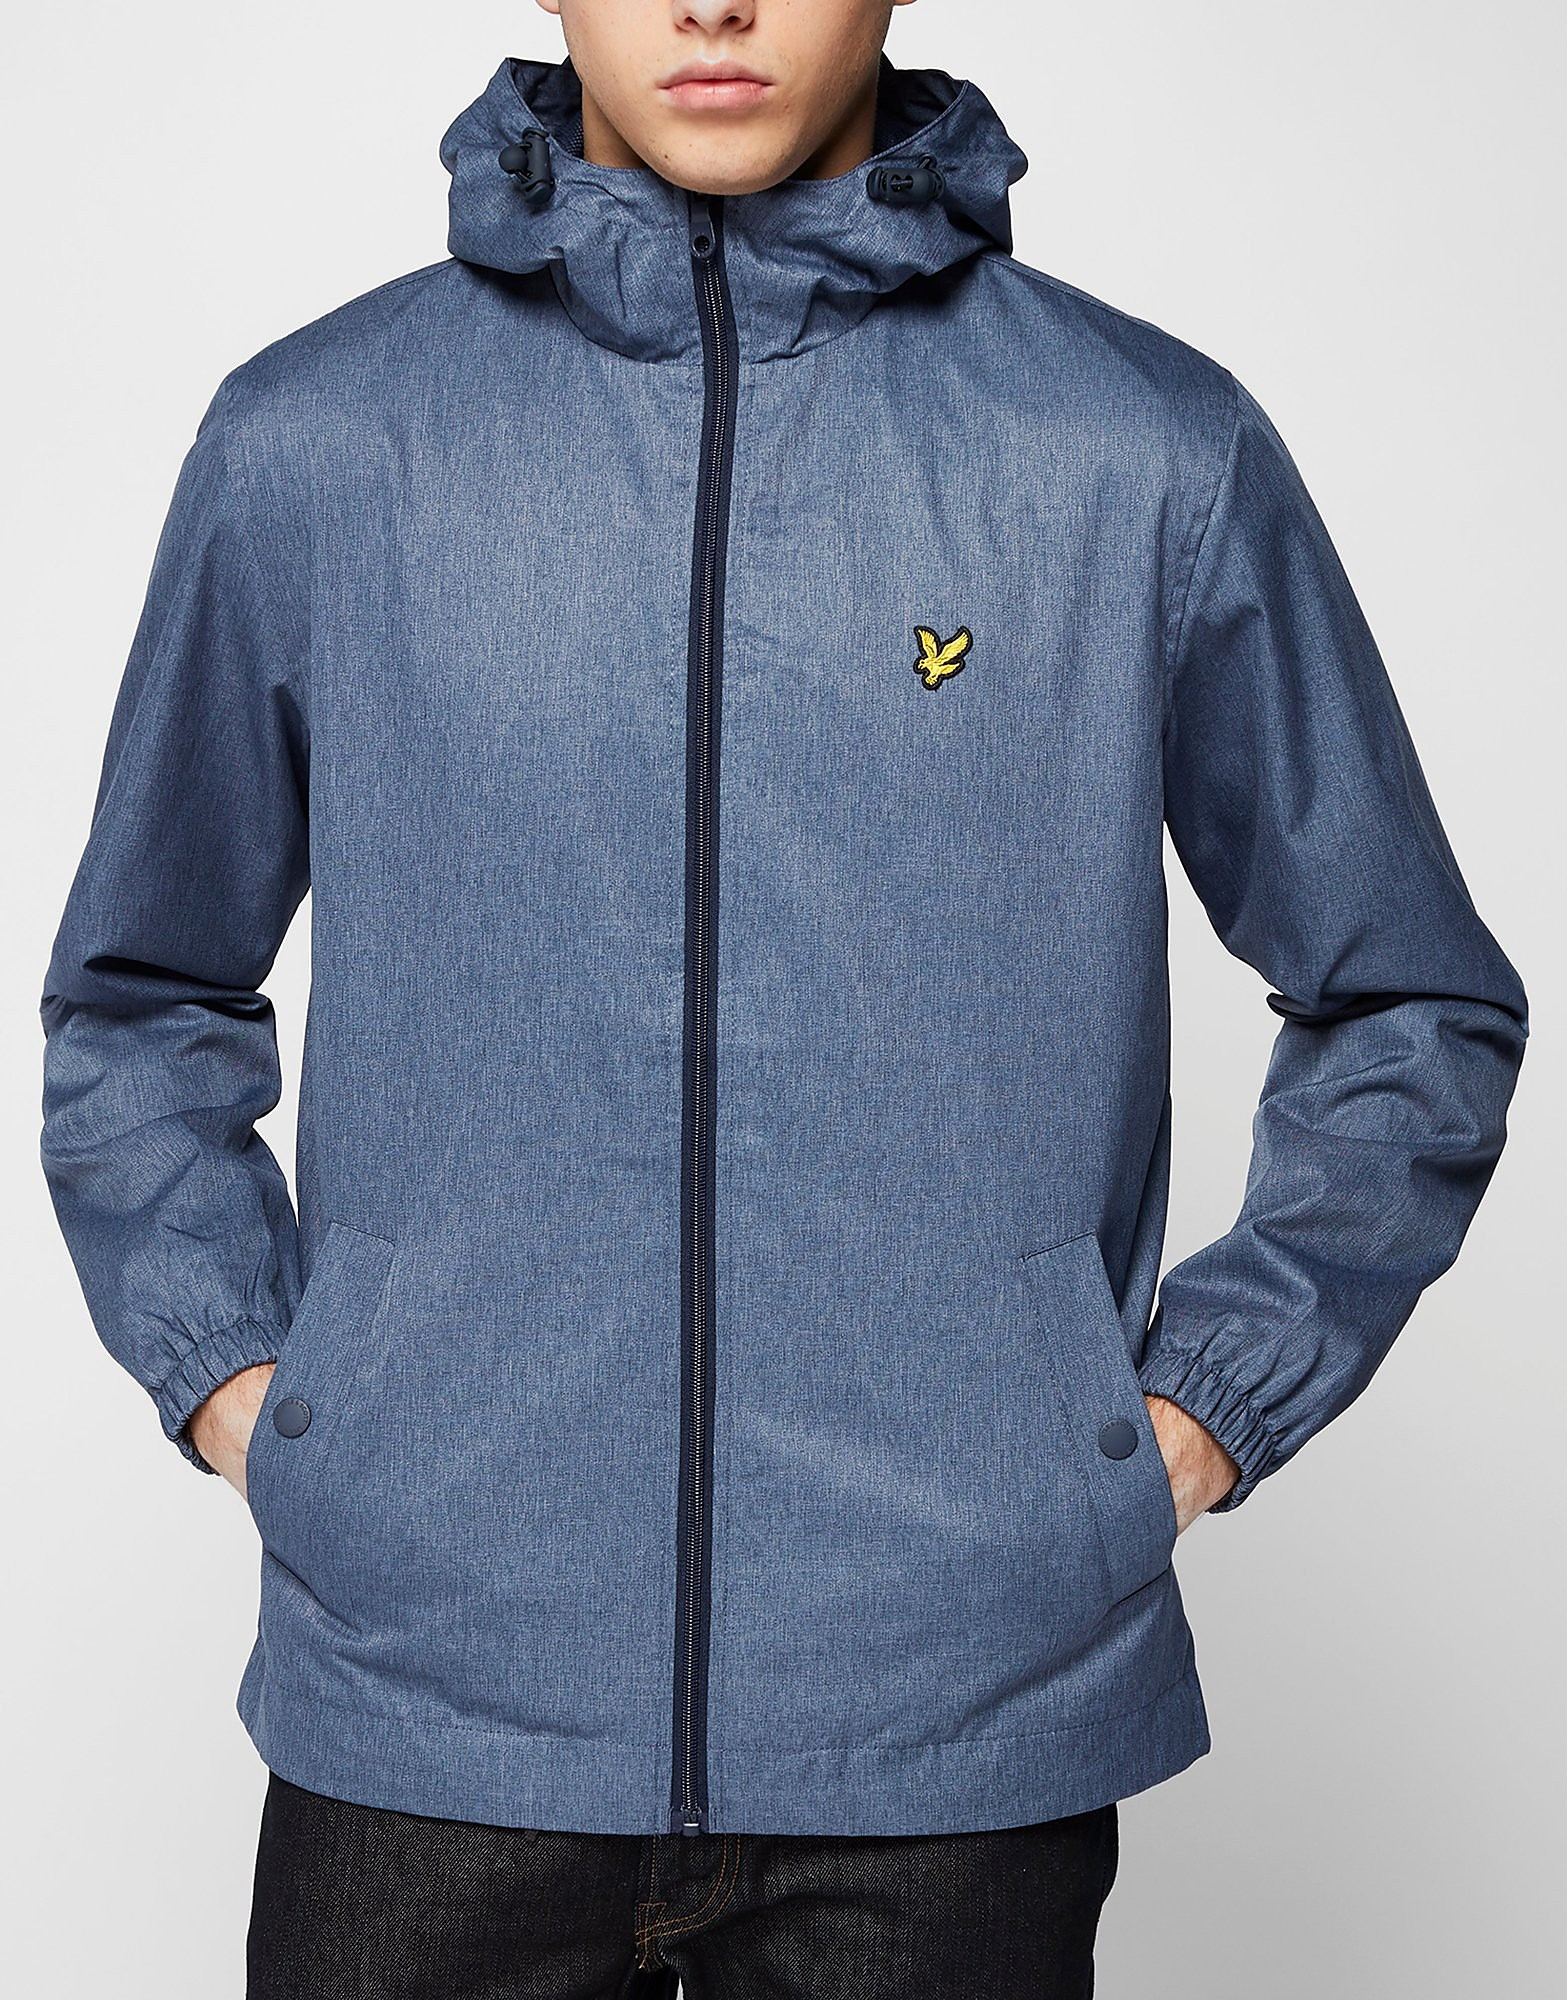 Lyle & Scott Marl Festival Jacket